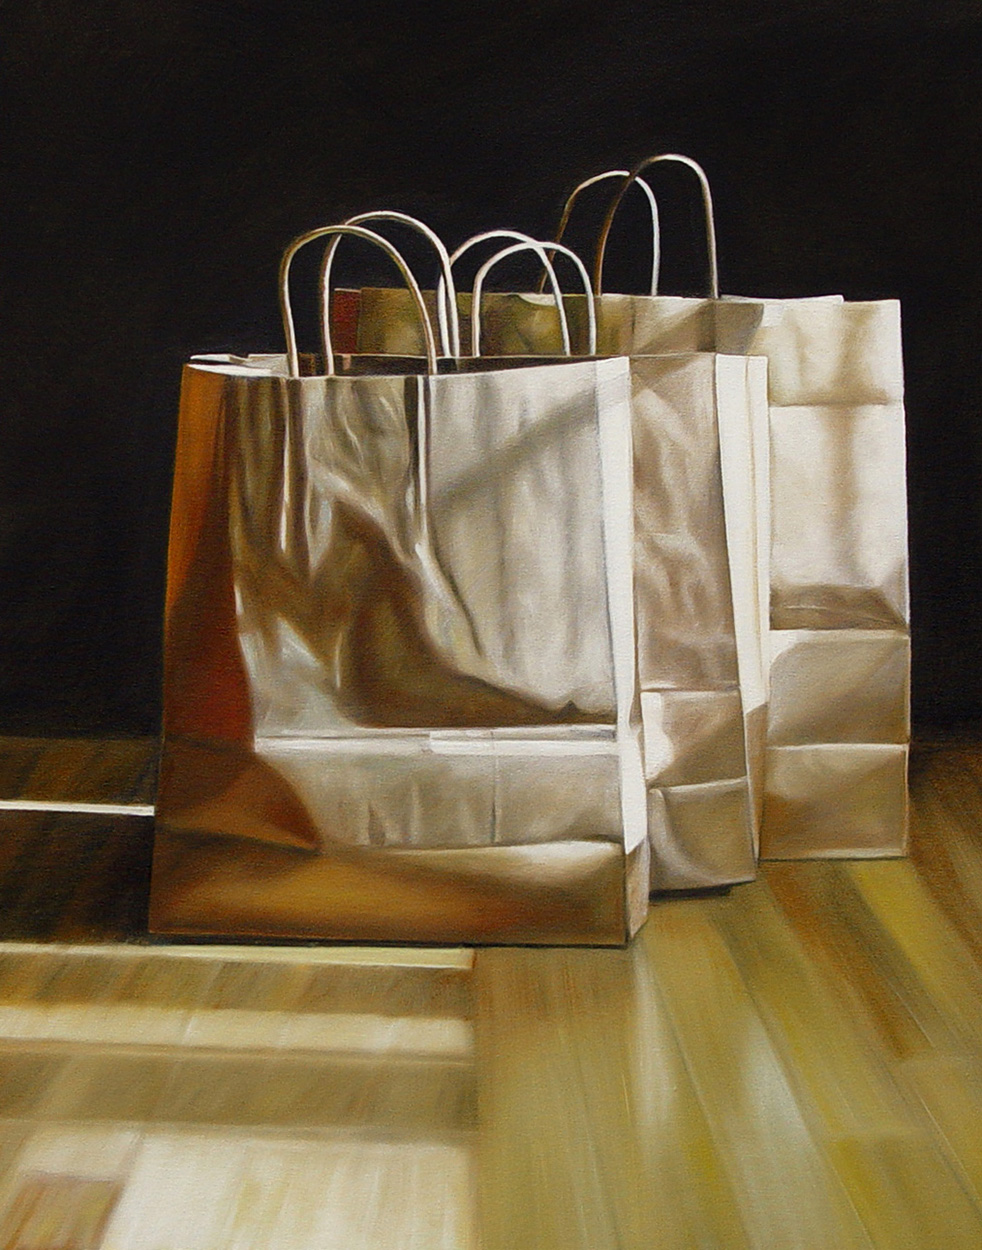 Three Bags No. 2  |  22 x 28  |  Oil on canvas